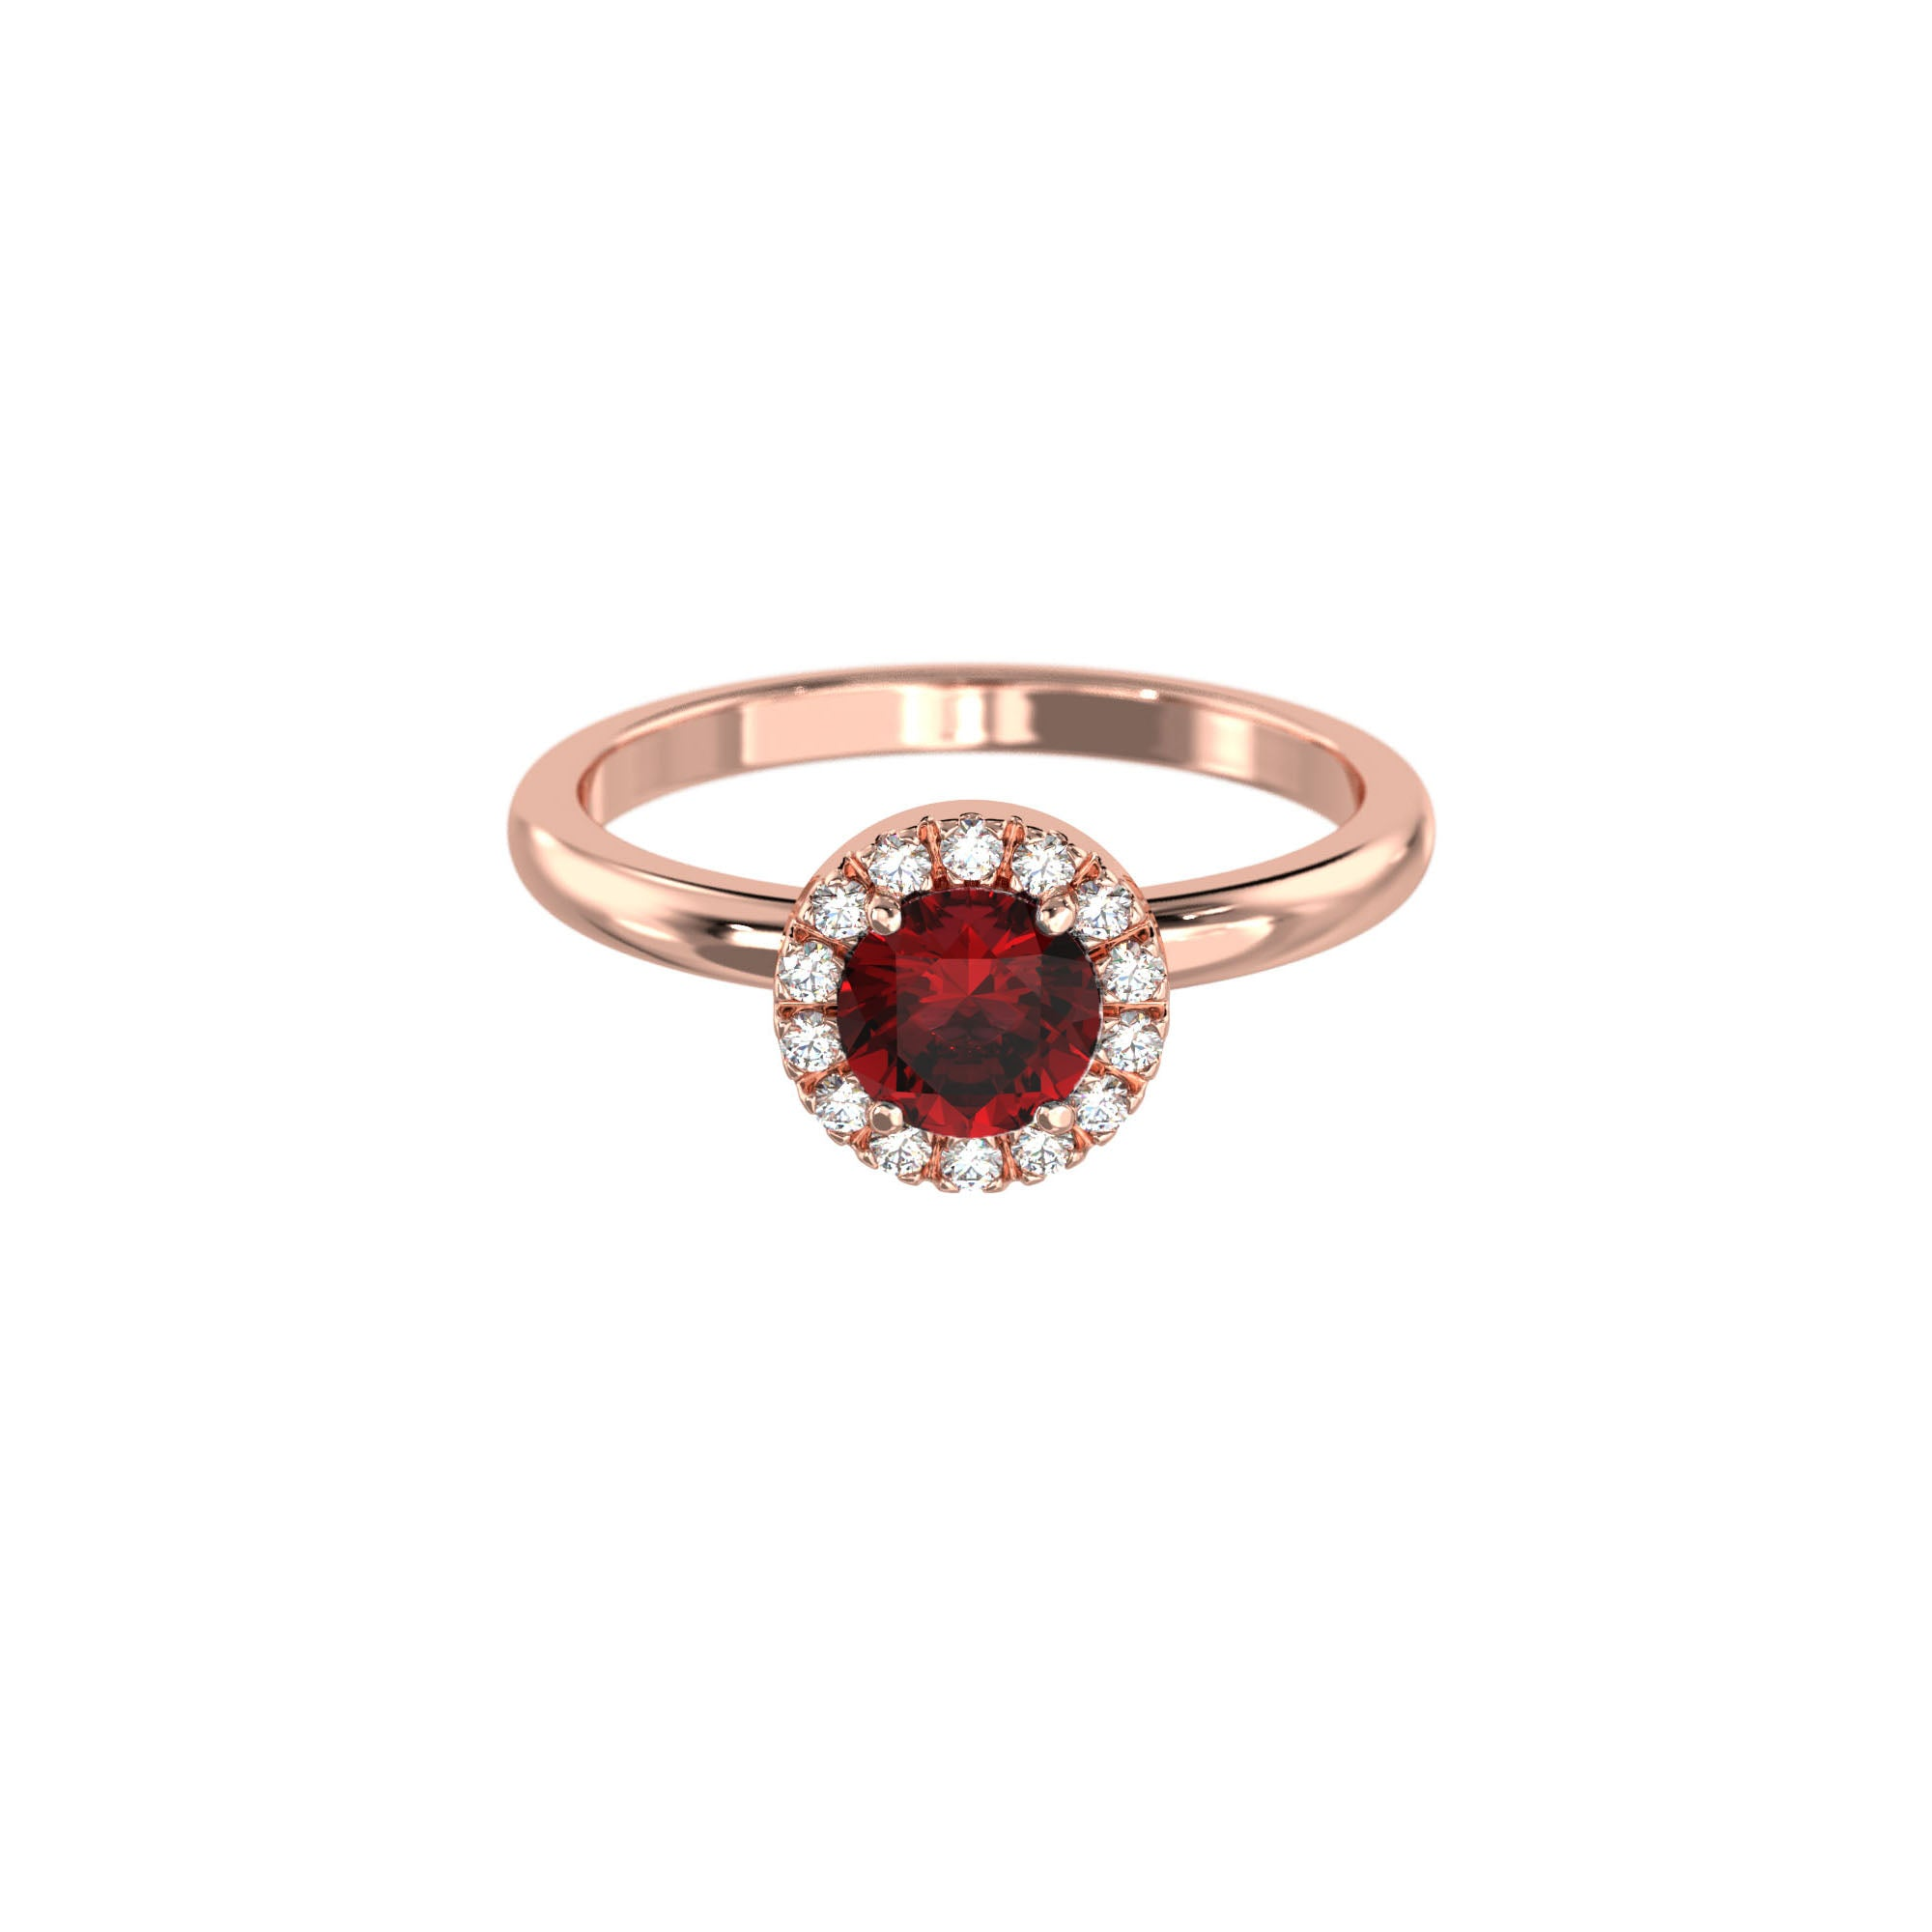 925 Silver Luxe Series Ring - Lydia (Garnet) - Rose Gold Plated